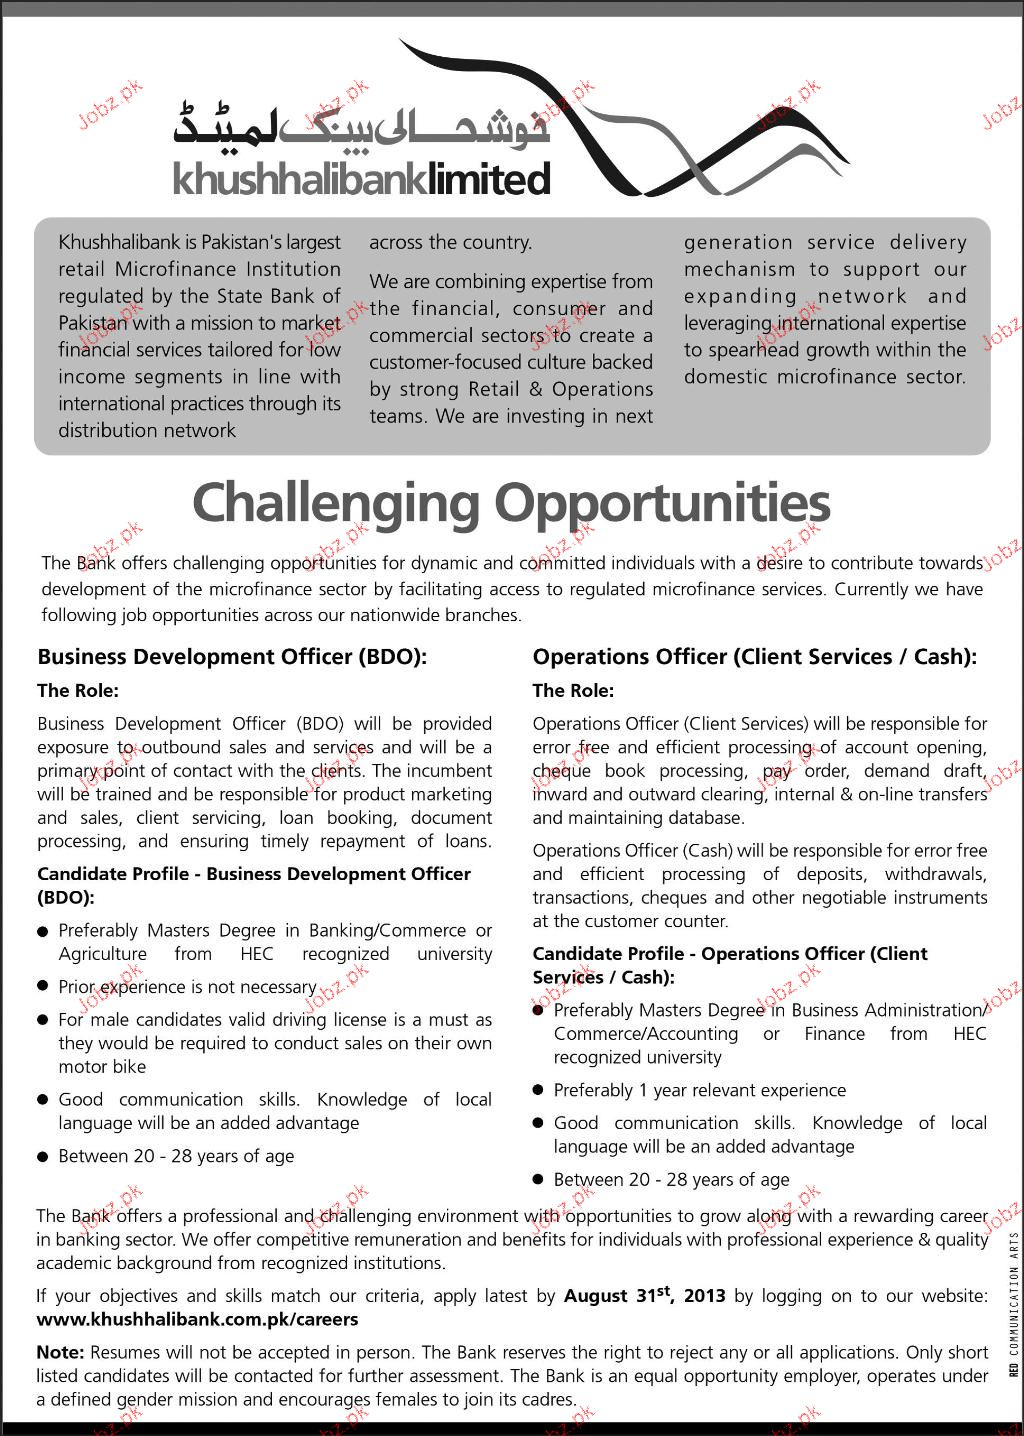 Business Development Officers, Operations Officers Wanted